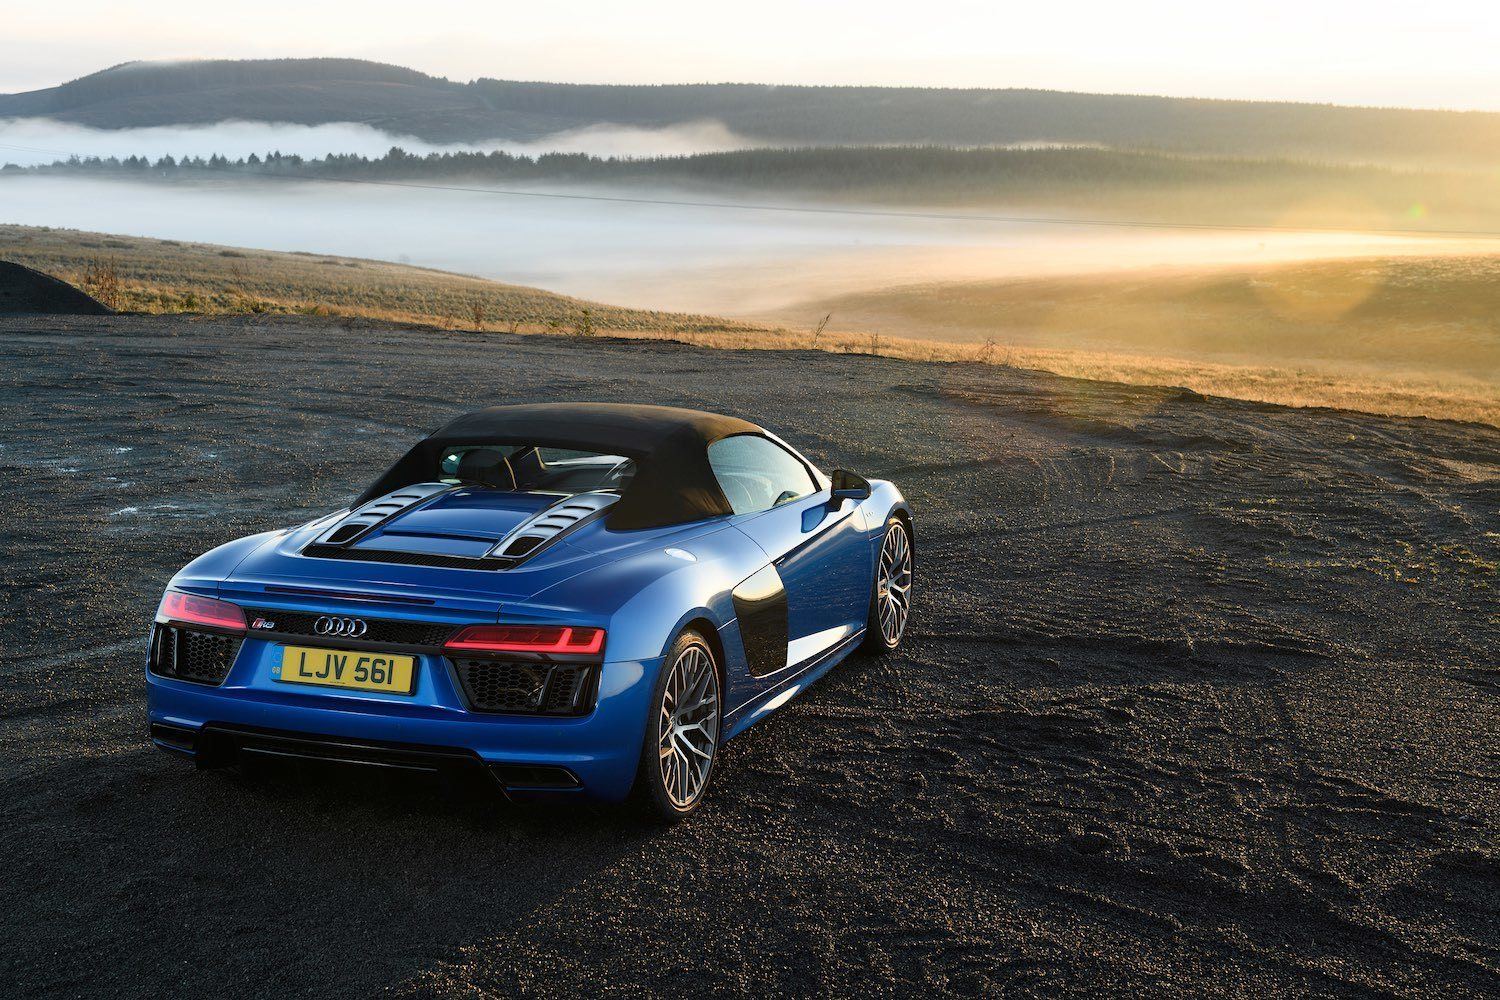 Jonathan Humphrey drives the sensational Audi R8 Spyder for Drive 3